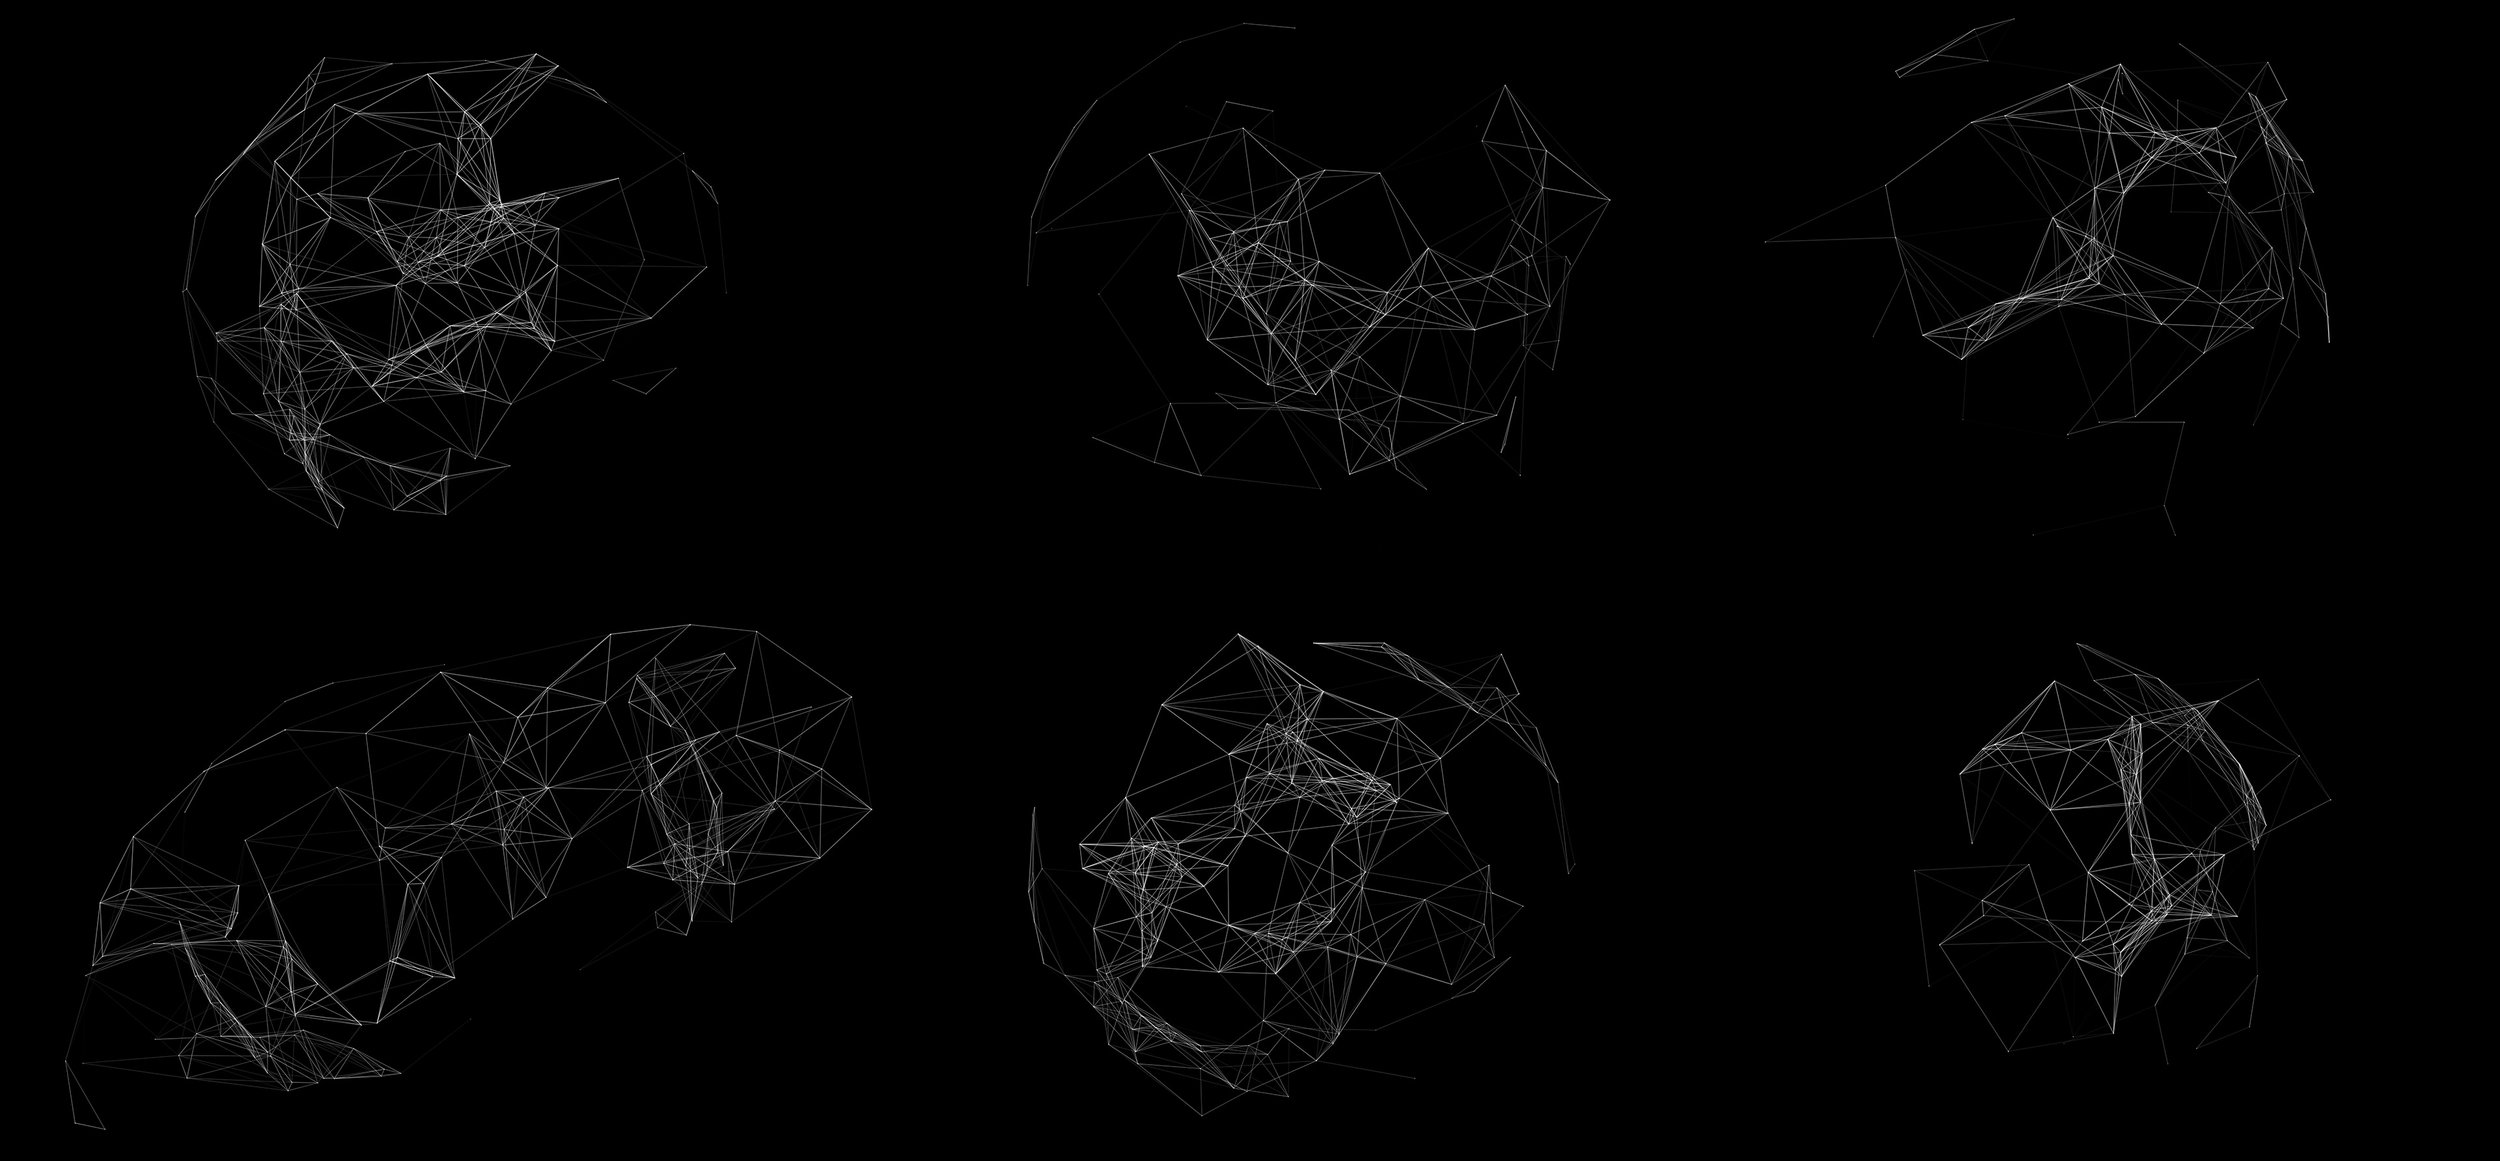 Abstract elements created in Plexus as visual syntax for the project.